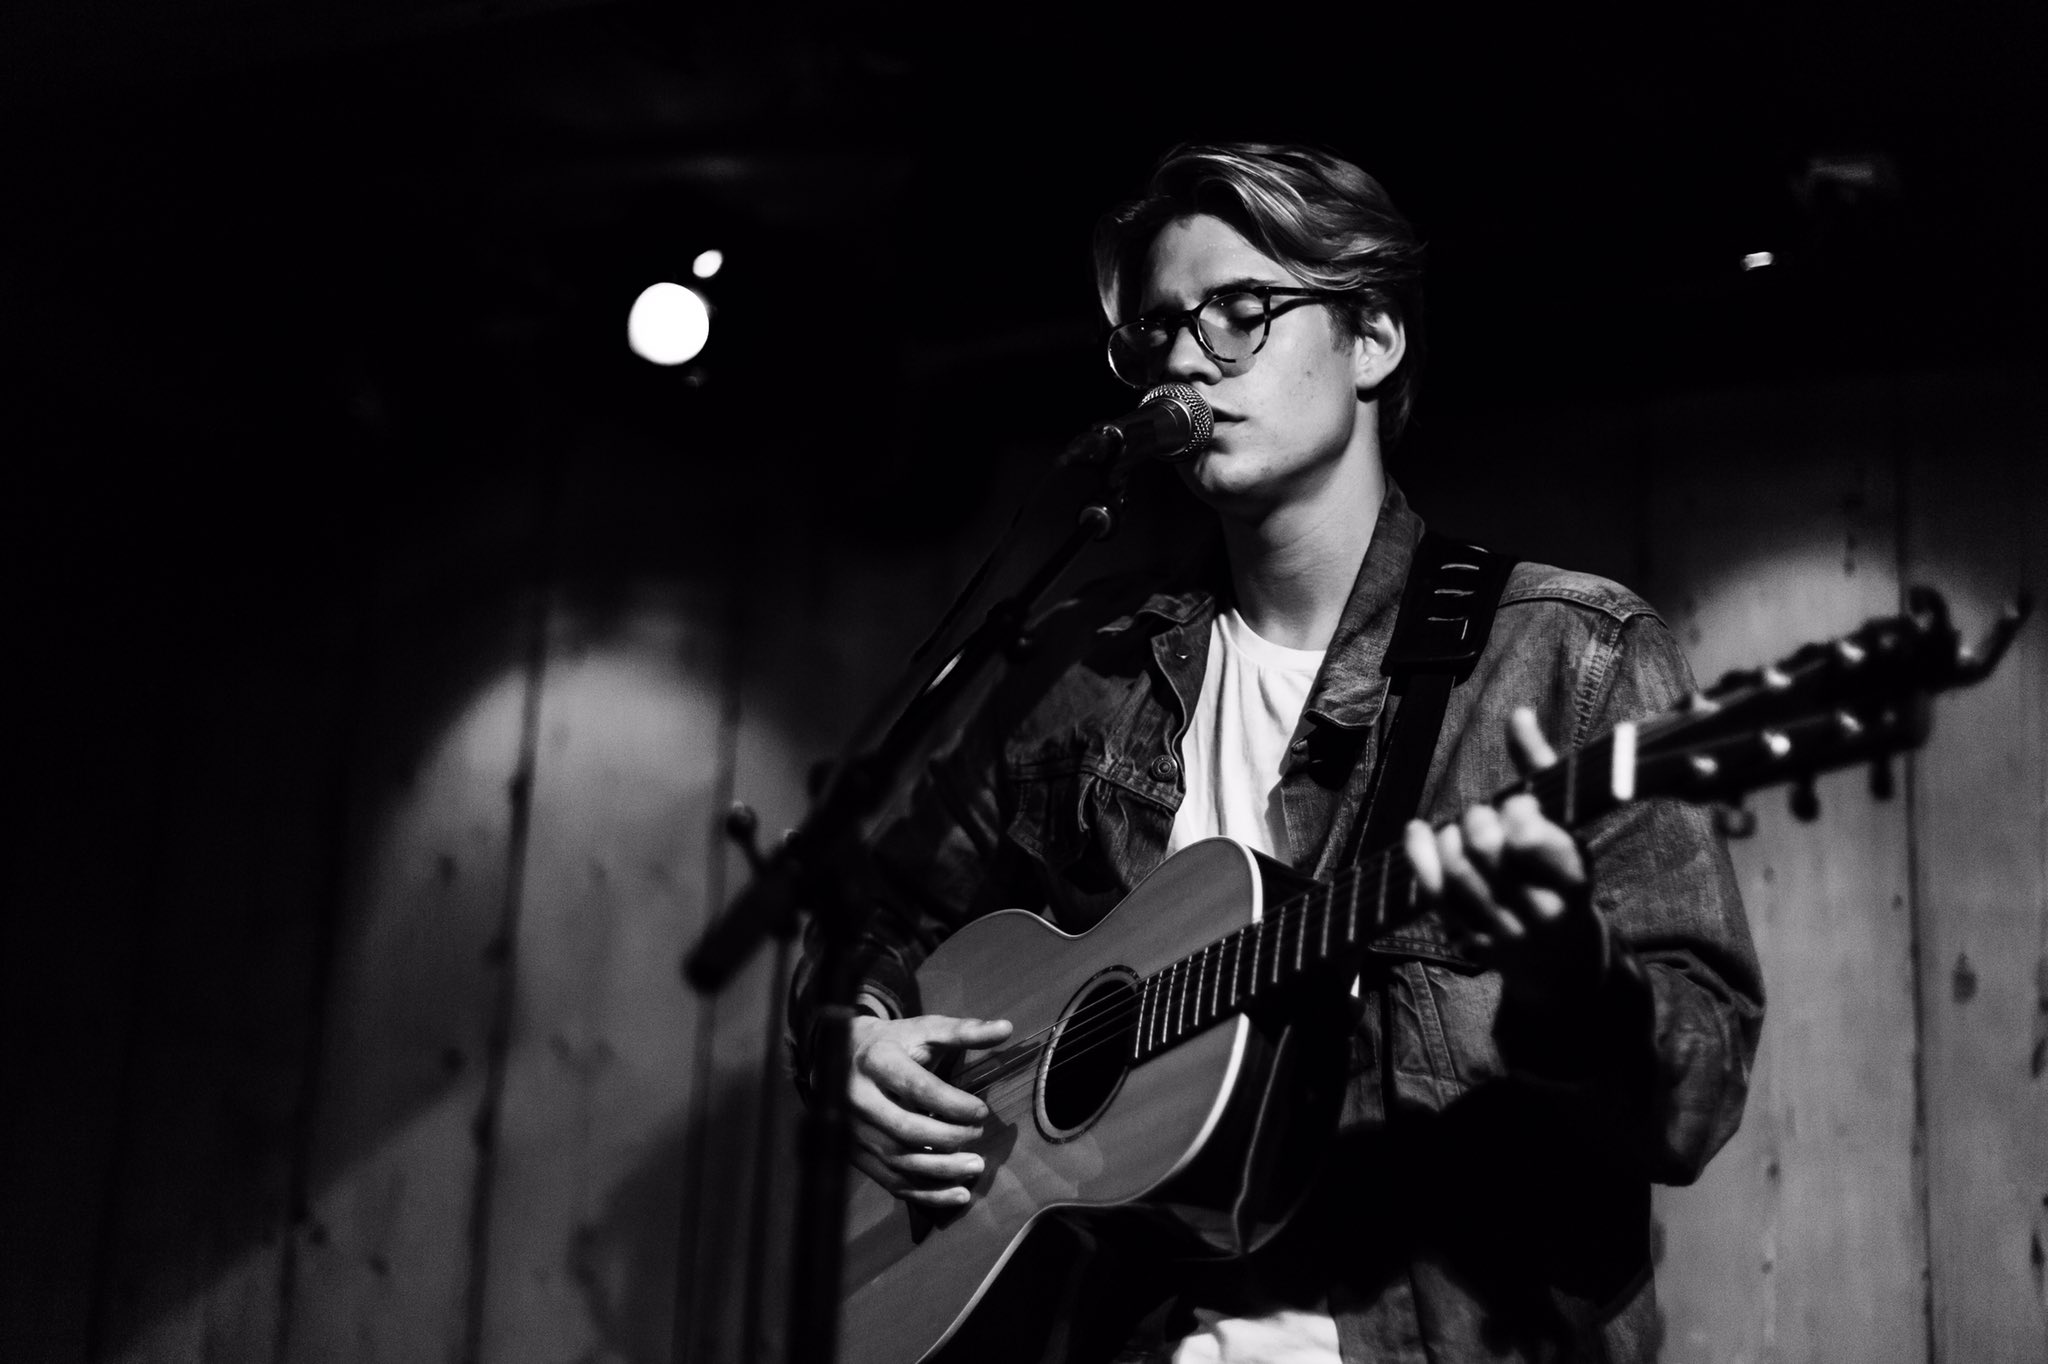 Atlanta and Orlando! I'm taking one of my great friends @coreyharp over for these shows . https://t.co/FynWc77LkB